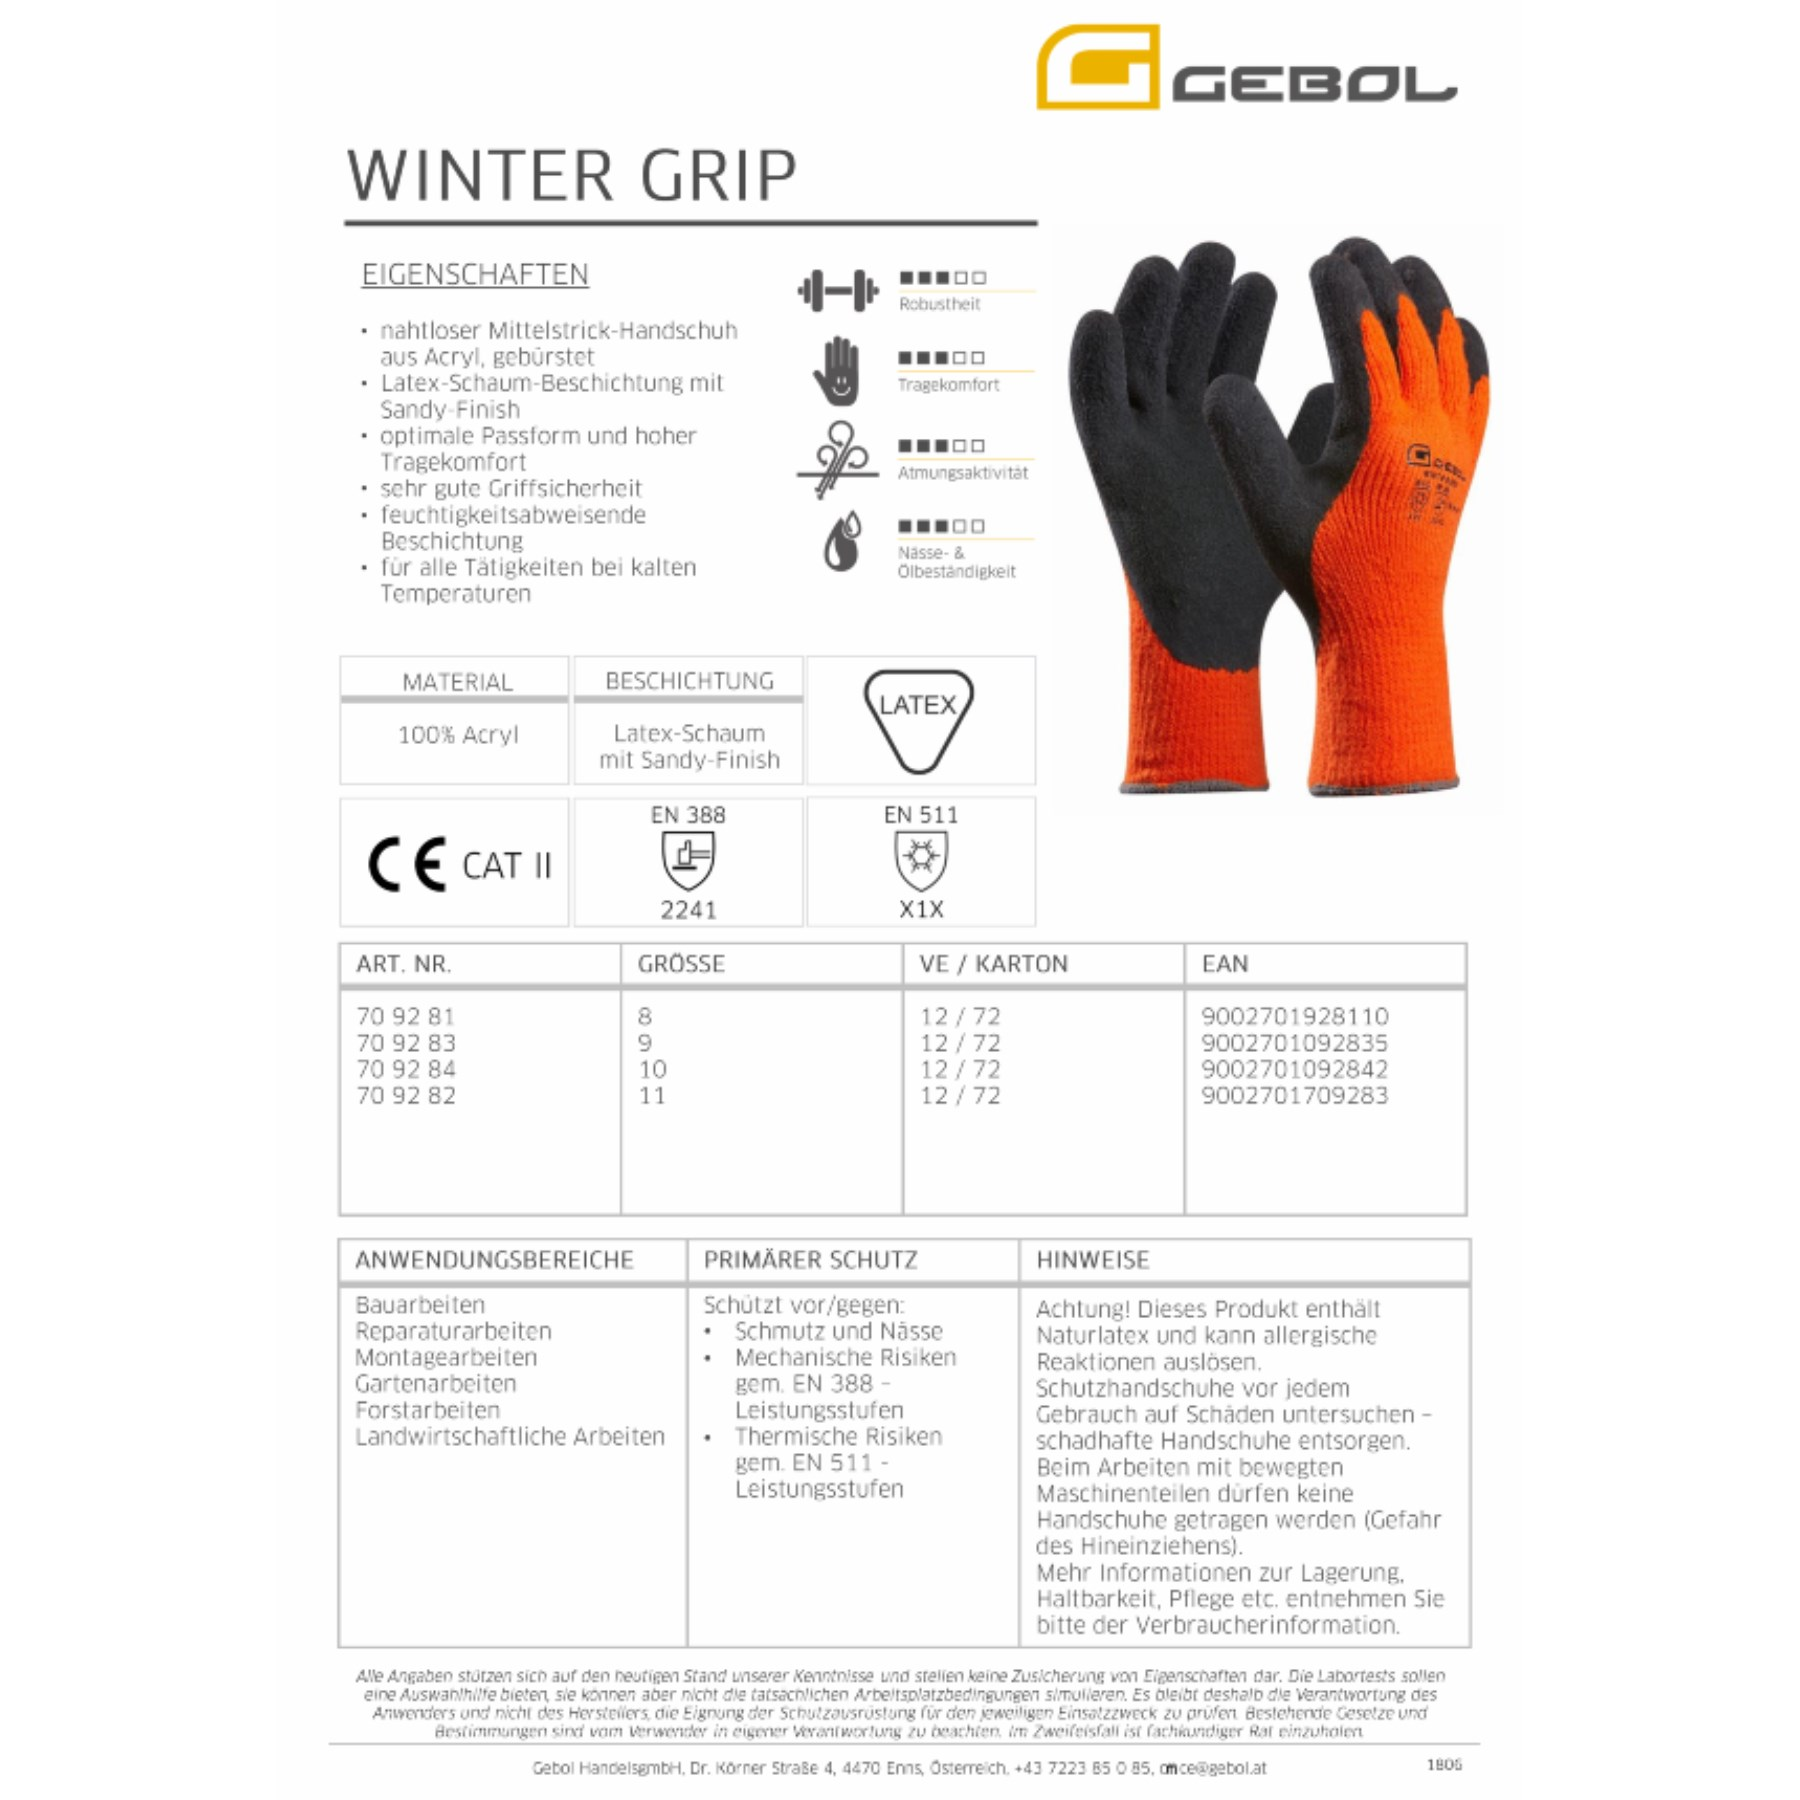 1214513 - Arbeitshandschuh Winter Grip